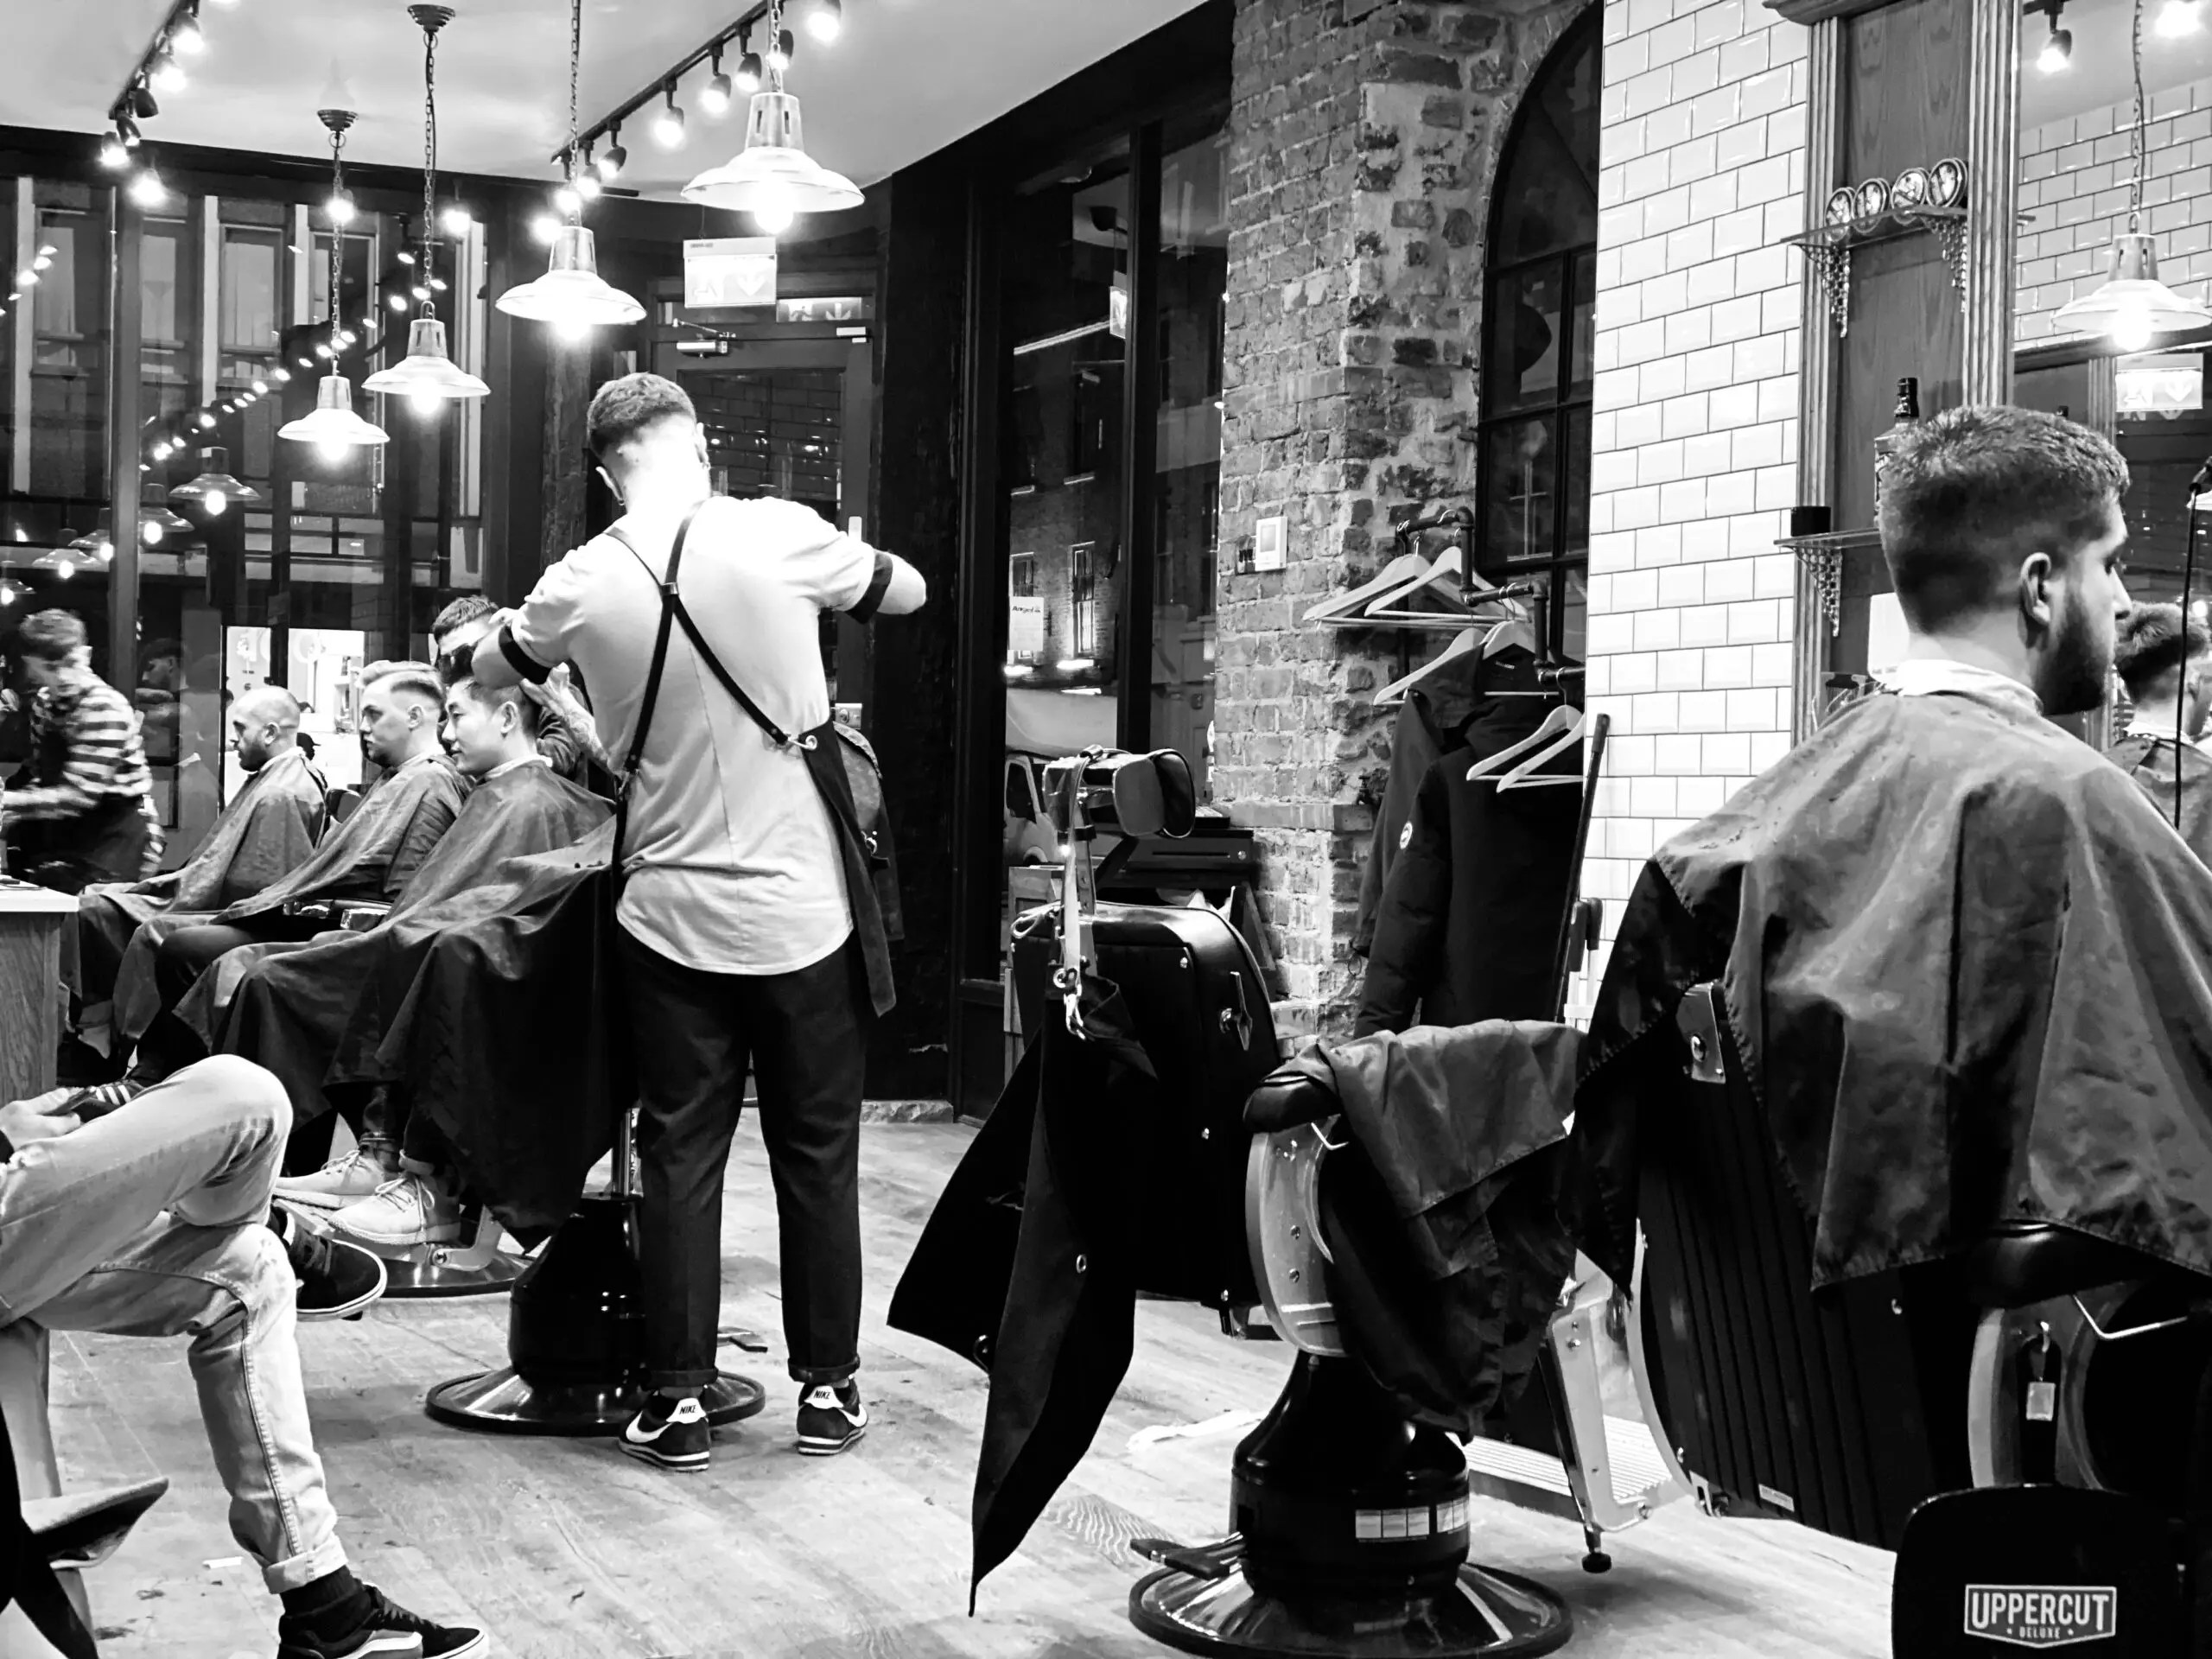 Guillotine Barbers London Bridge